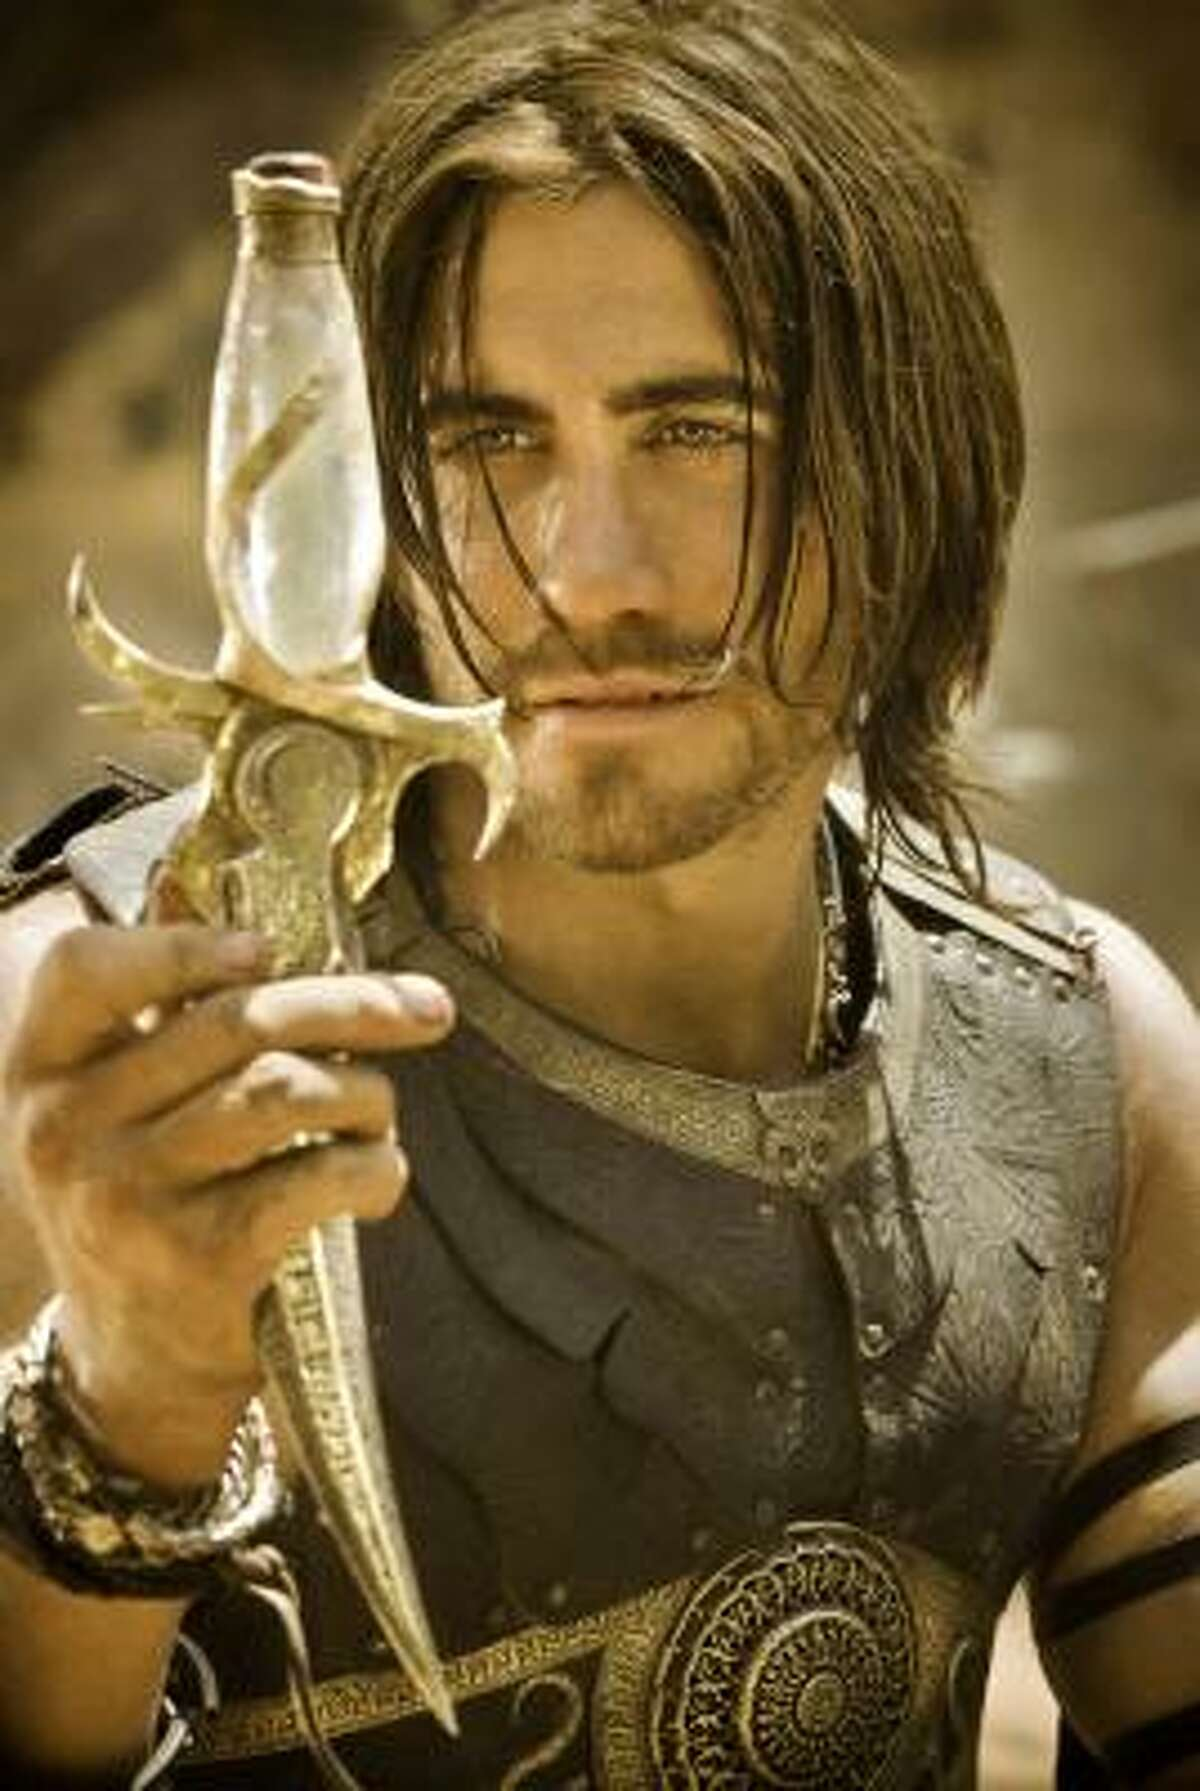 Prince of Persia: The Sands of Time , $5.3 million The video game turns into a film about a prince teaming up with a rival princess to stop a ruler from unleashing a sandstorm. Jake Gyllenhaal stars.